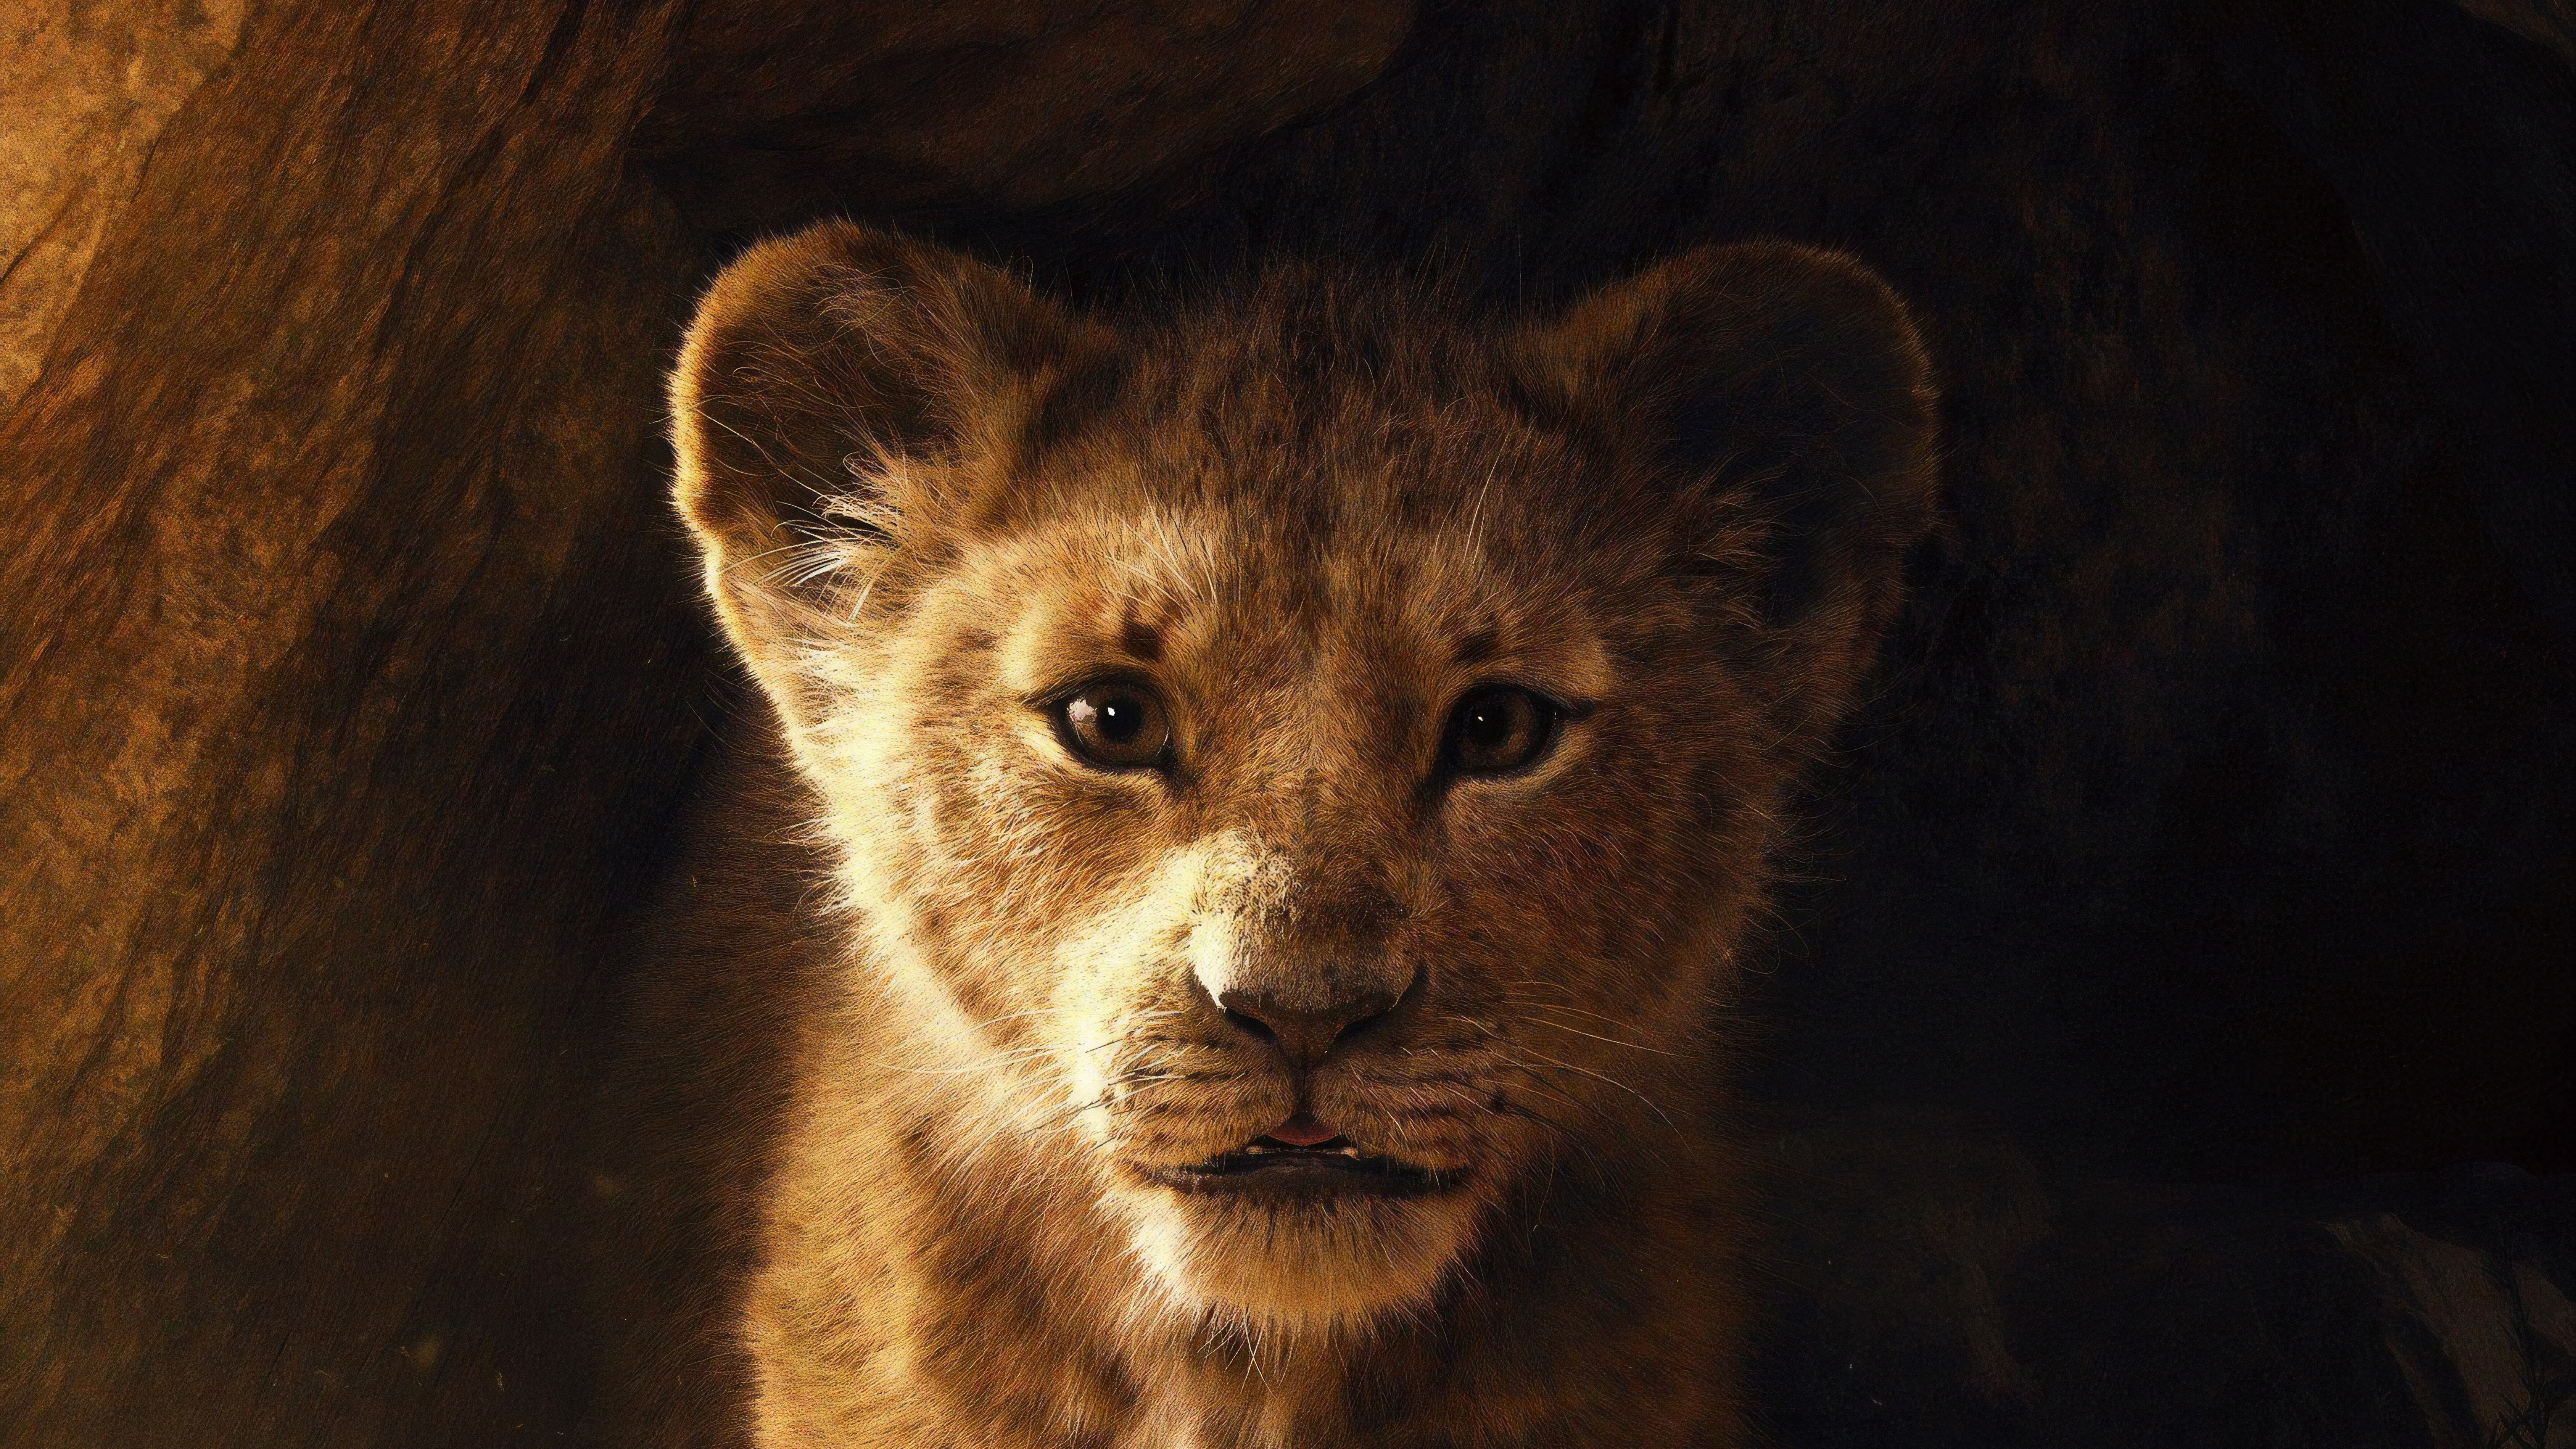 1125x2436 The Lion King 2019 Iphone Xs Iphone 10 Iphone X Hd